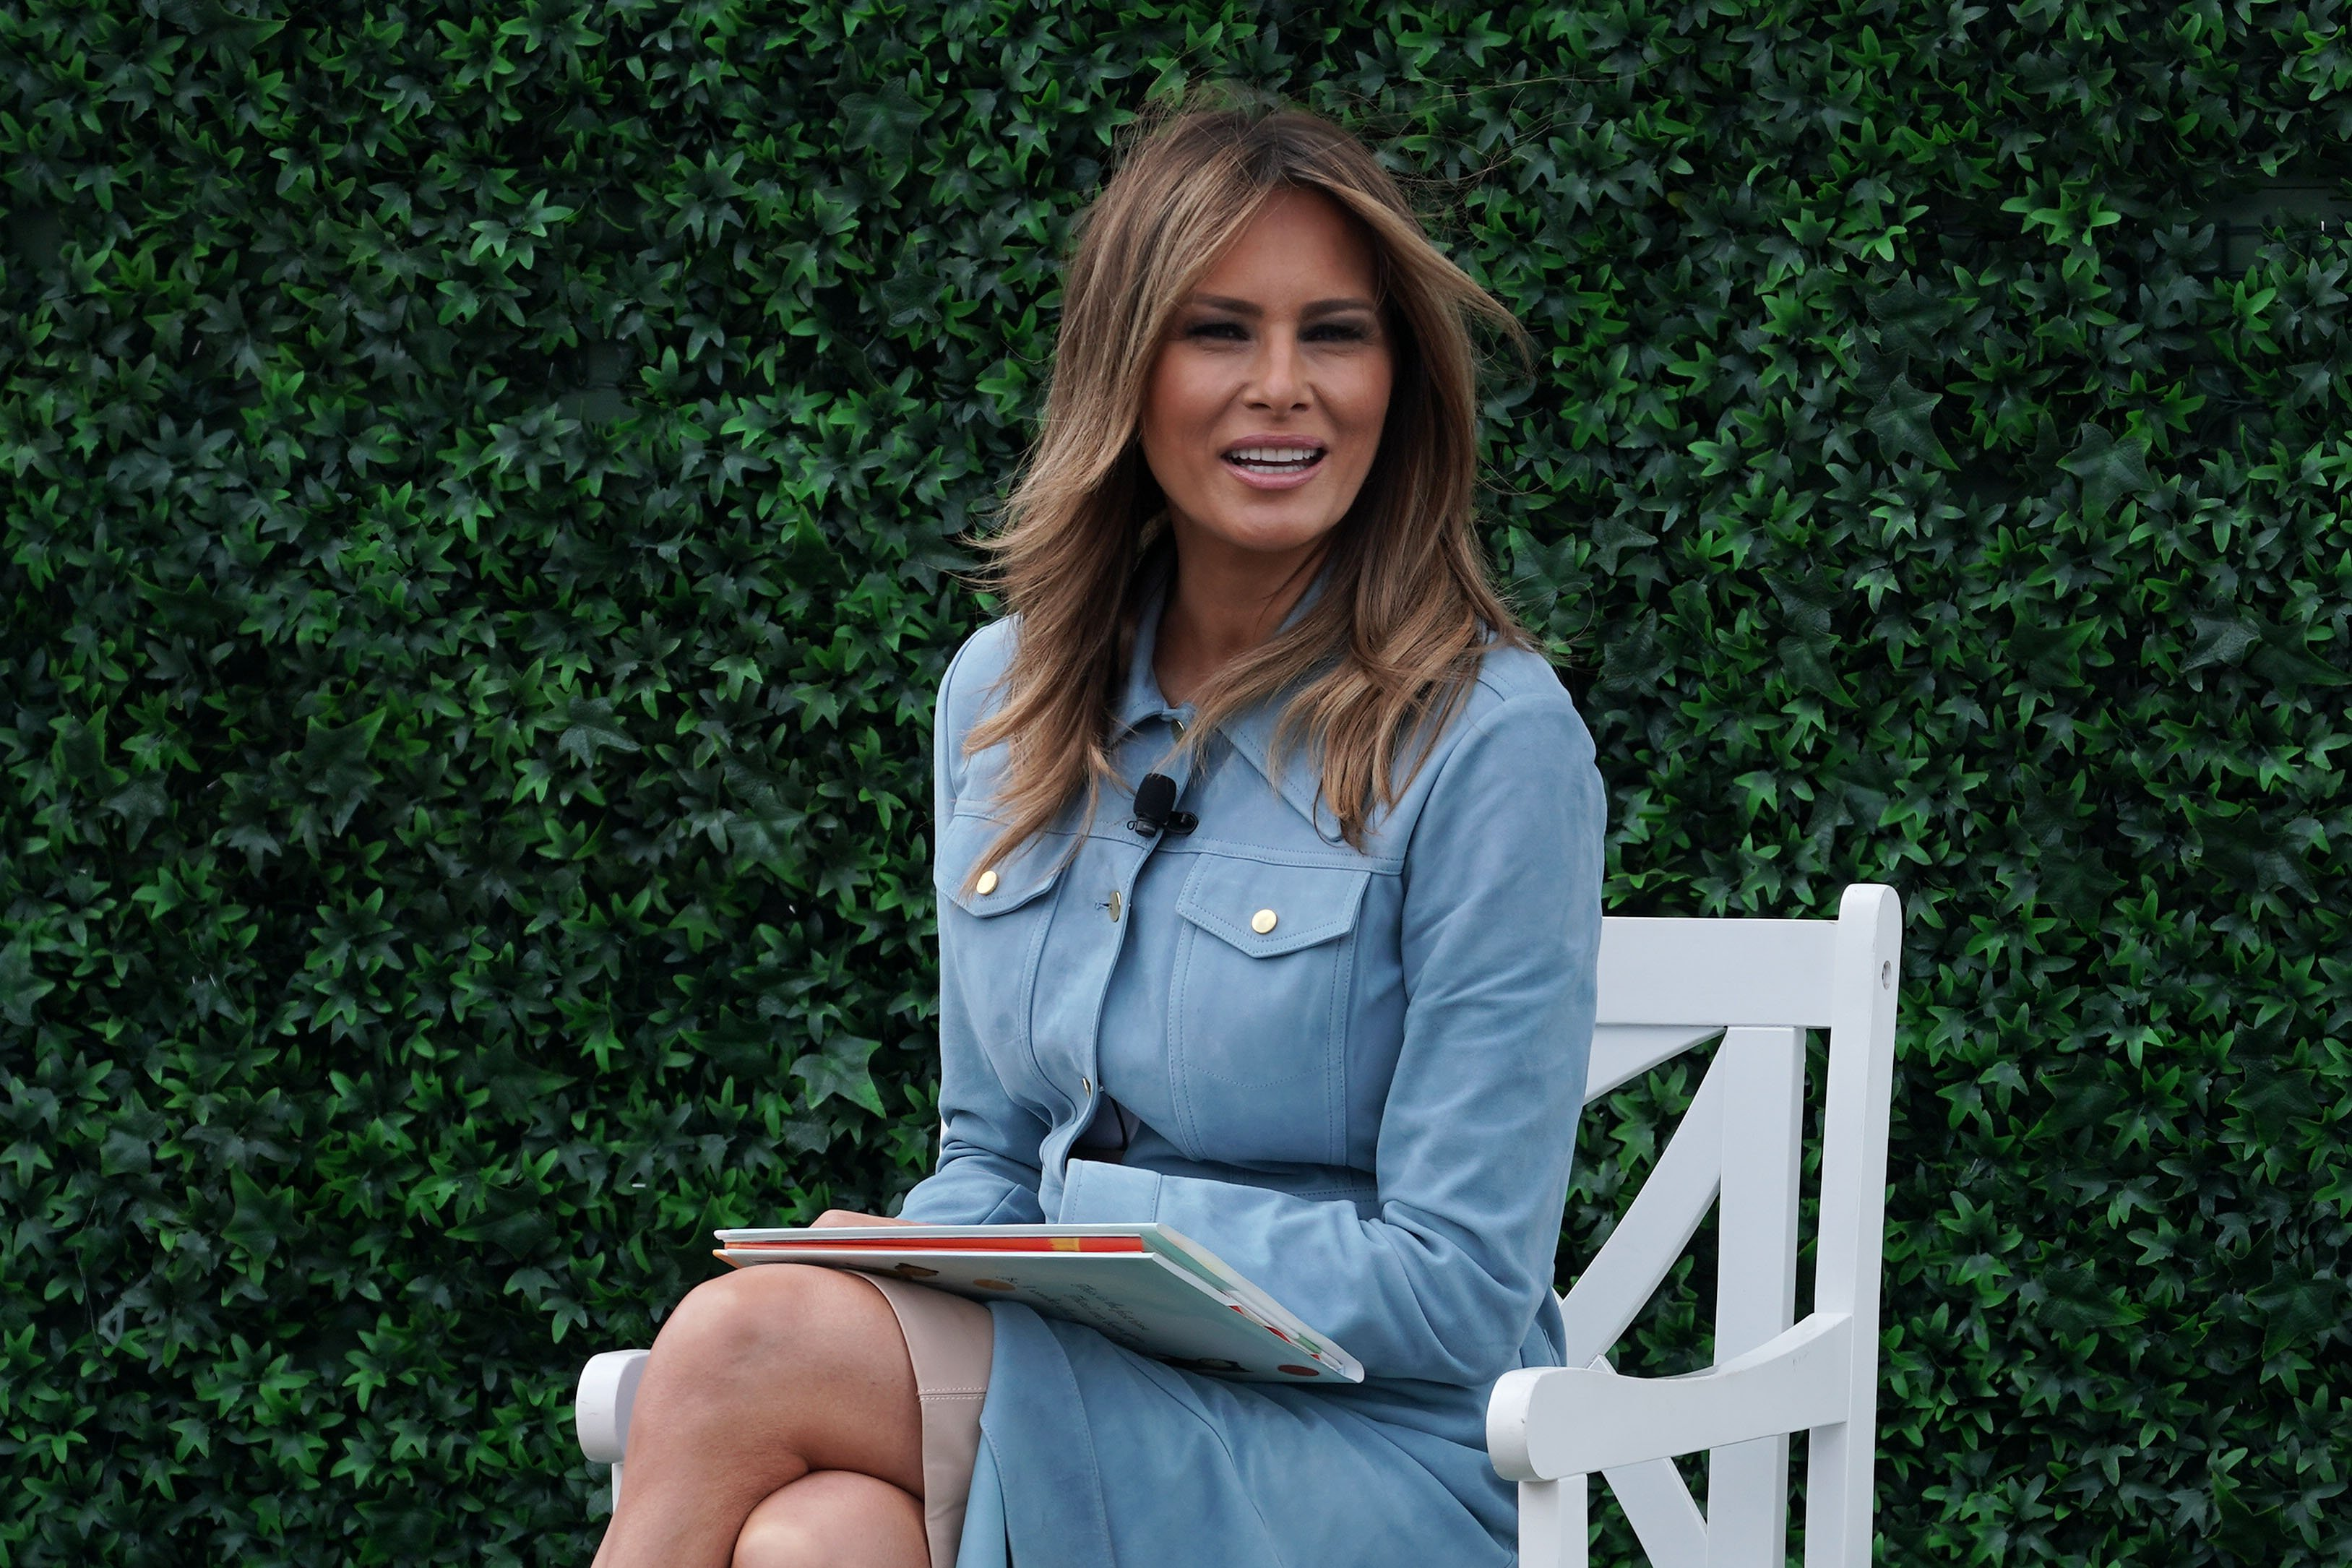 Melania Trump reads a story book to children during the 141st Easter Egg Roll on the South Lawn of the White House April 22, 2019, in Washington, DC. | Source: Getty Images.